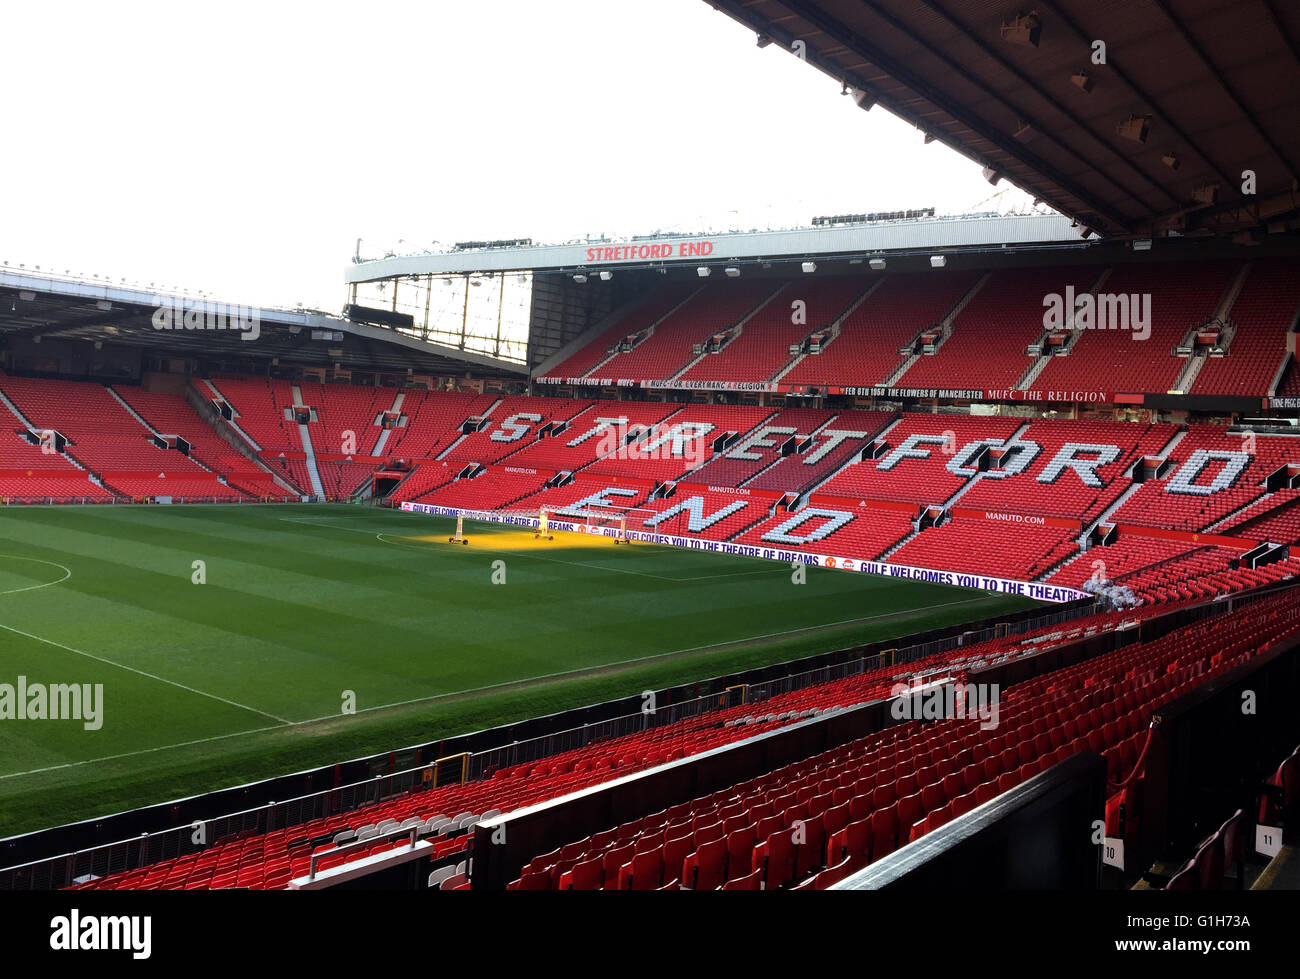 London, UK. 14th Mar, 2016. The photo taken with a mobile phone on March 14, 2016 shows Sir Alex Ferguson Stand - Stock Image